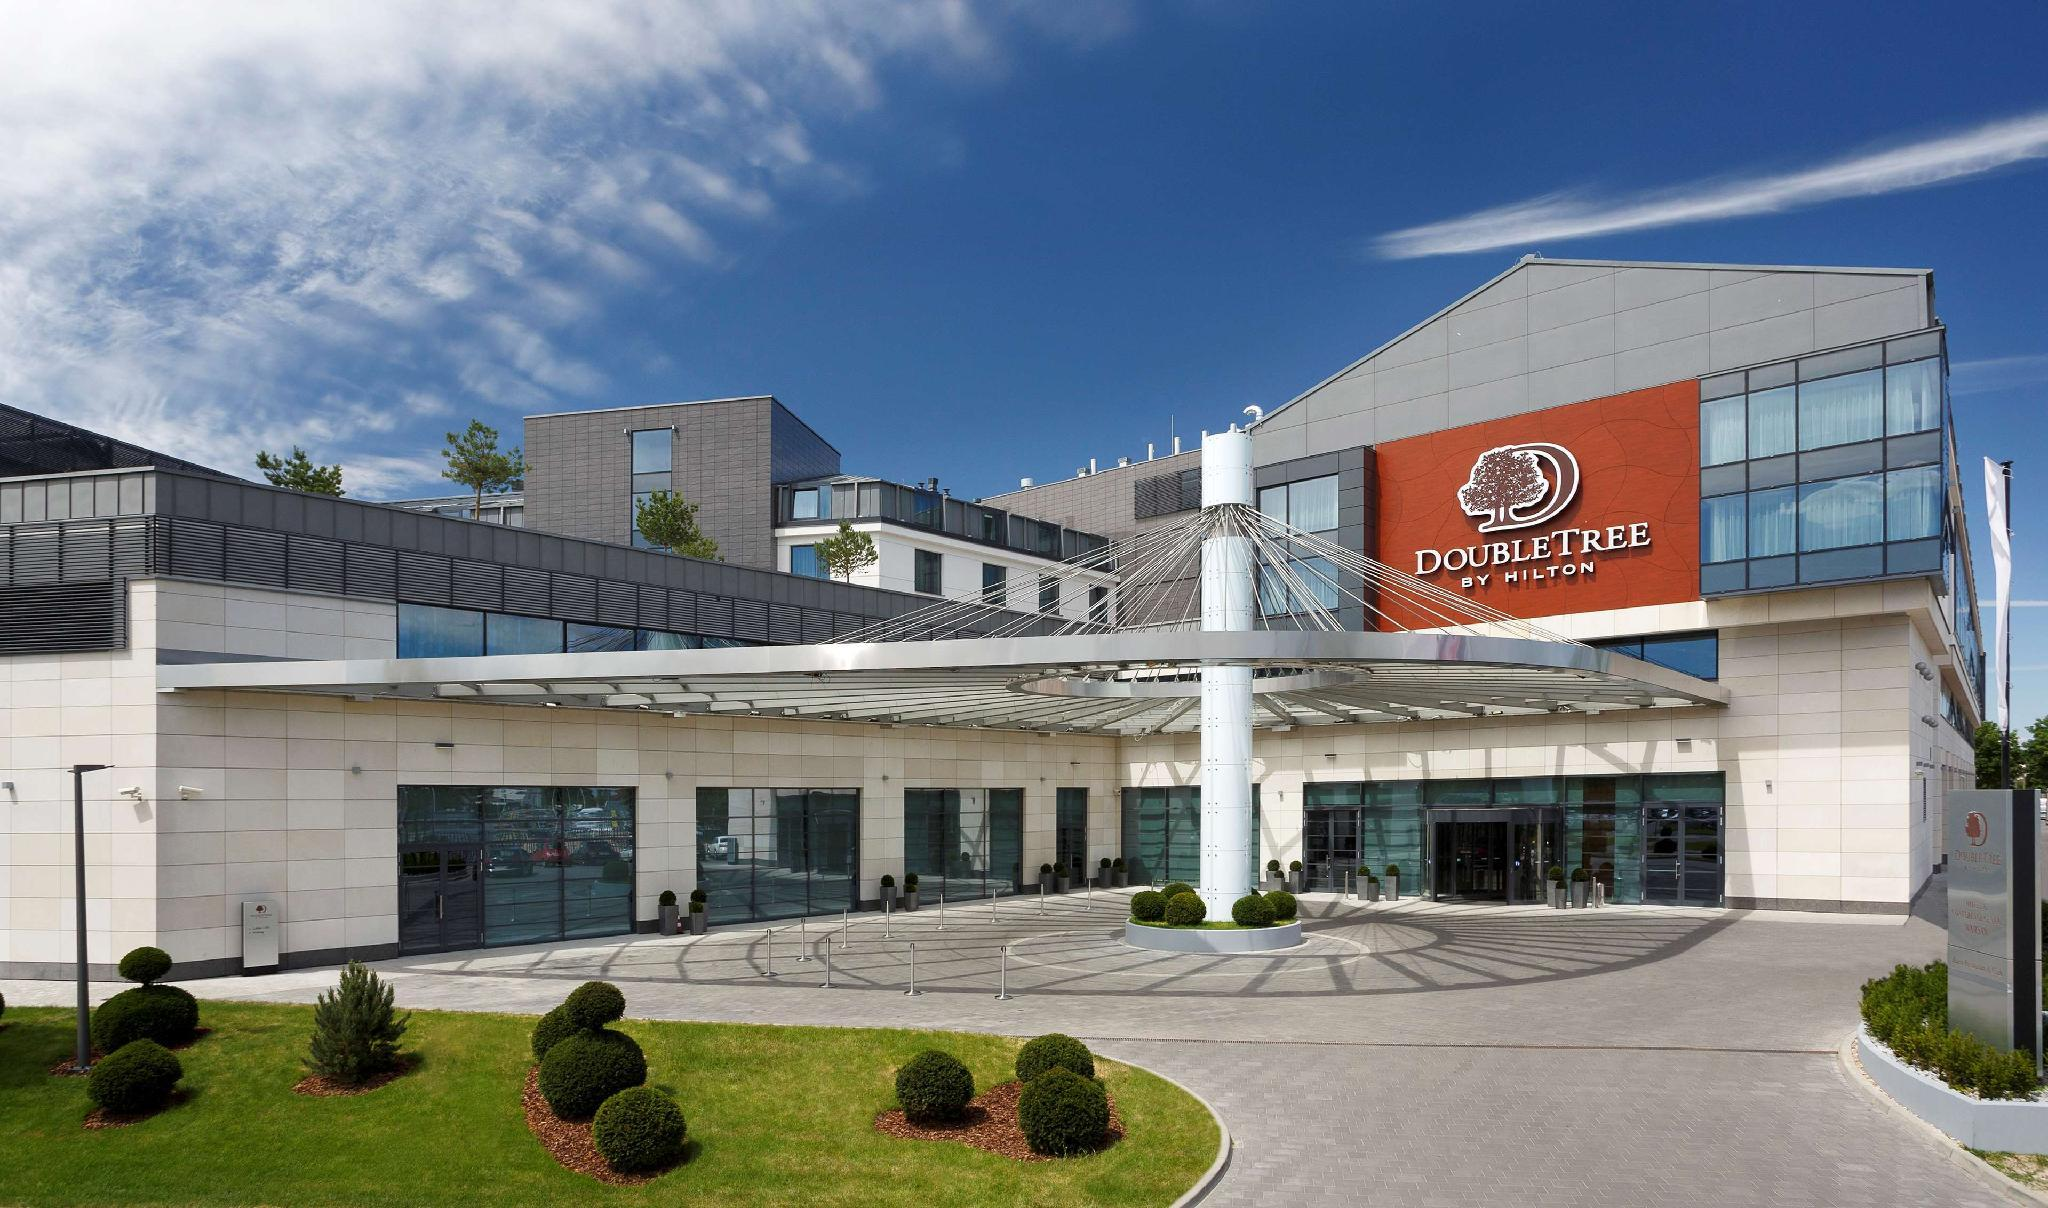 Doubletree Hotel And Conference Centre Warsaw